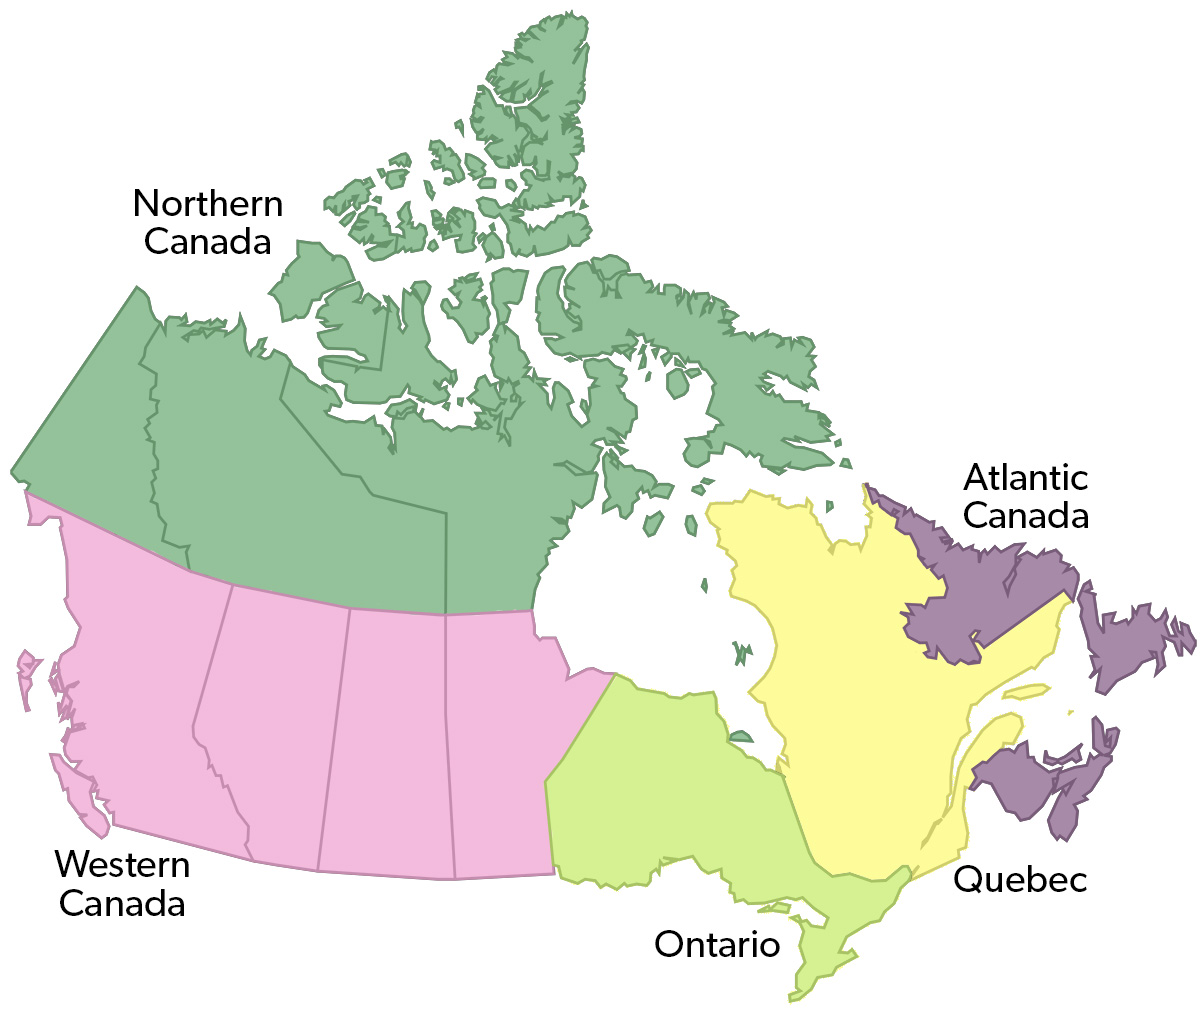 Interactive Map Of Canada And Provinces.Regional Economics In Canada The Canadian Encyclopedia